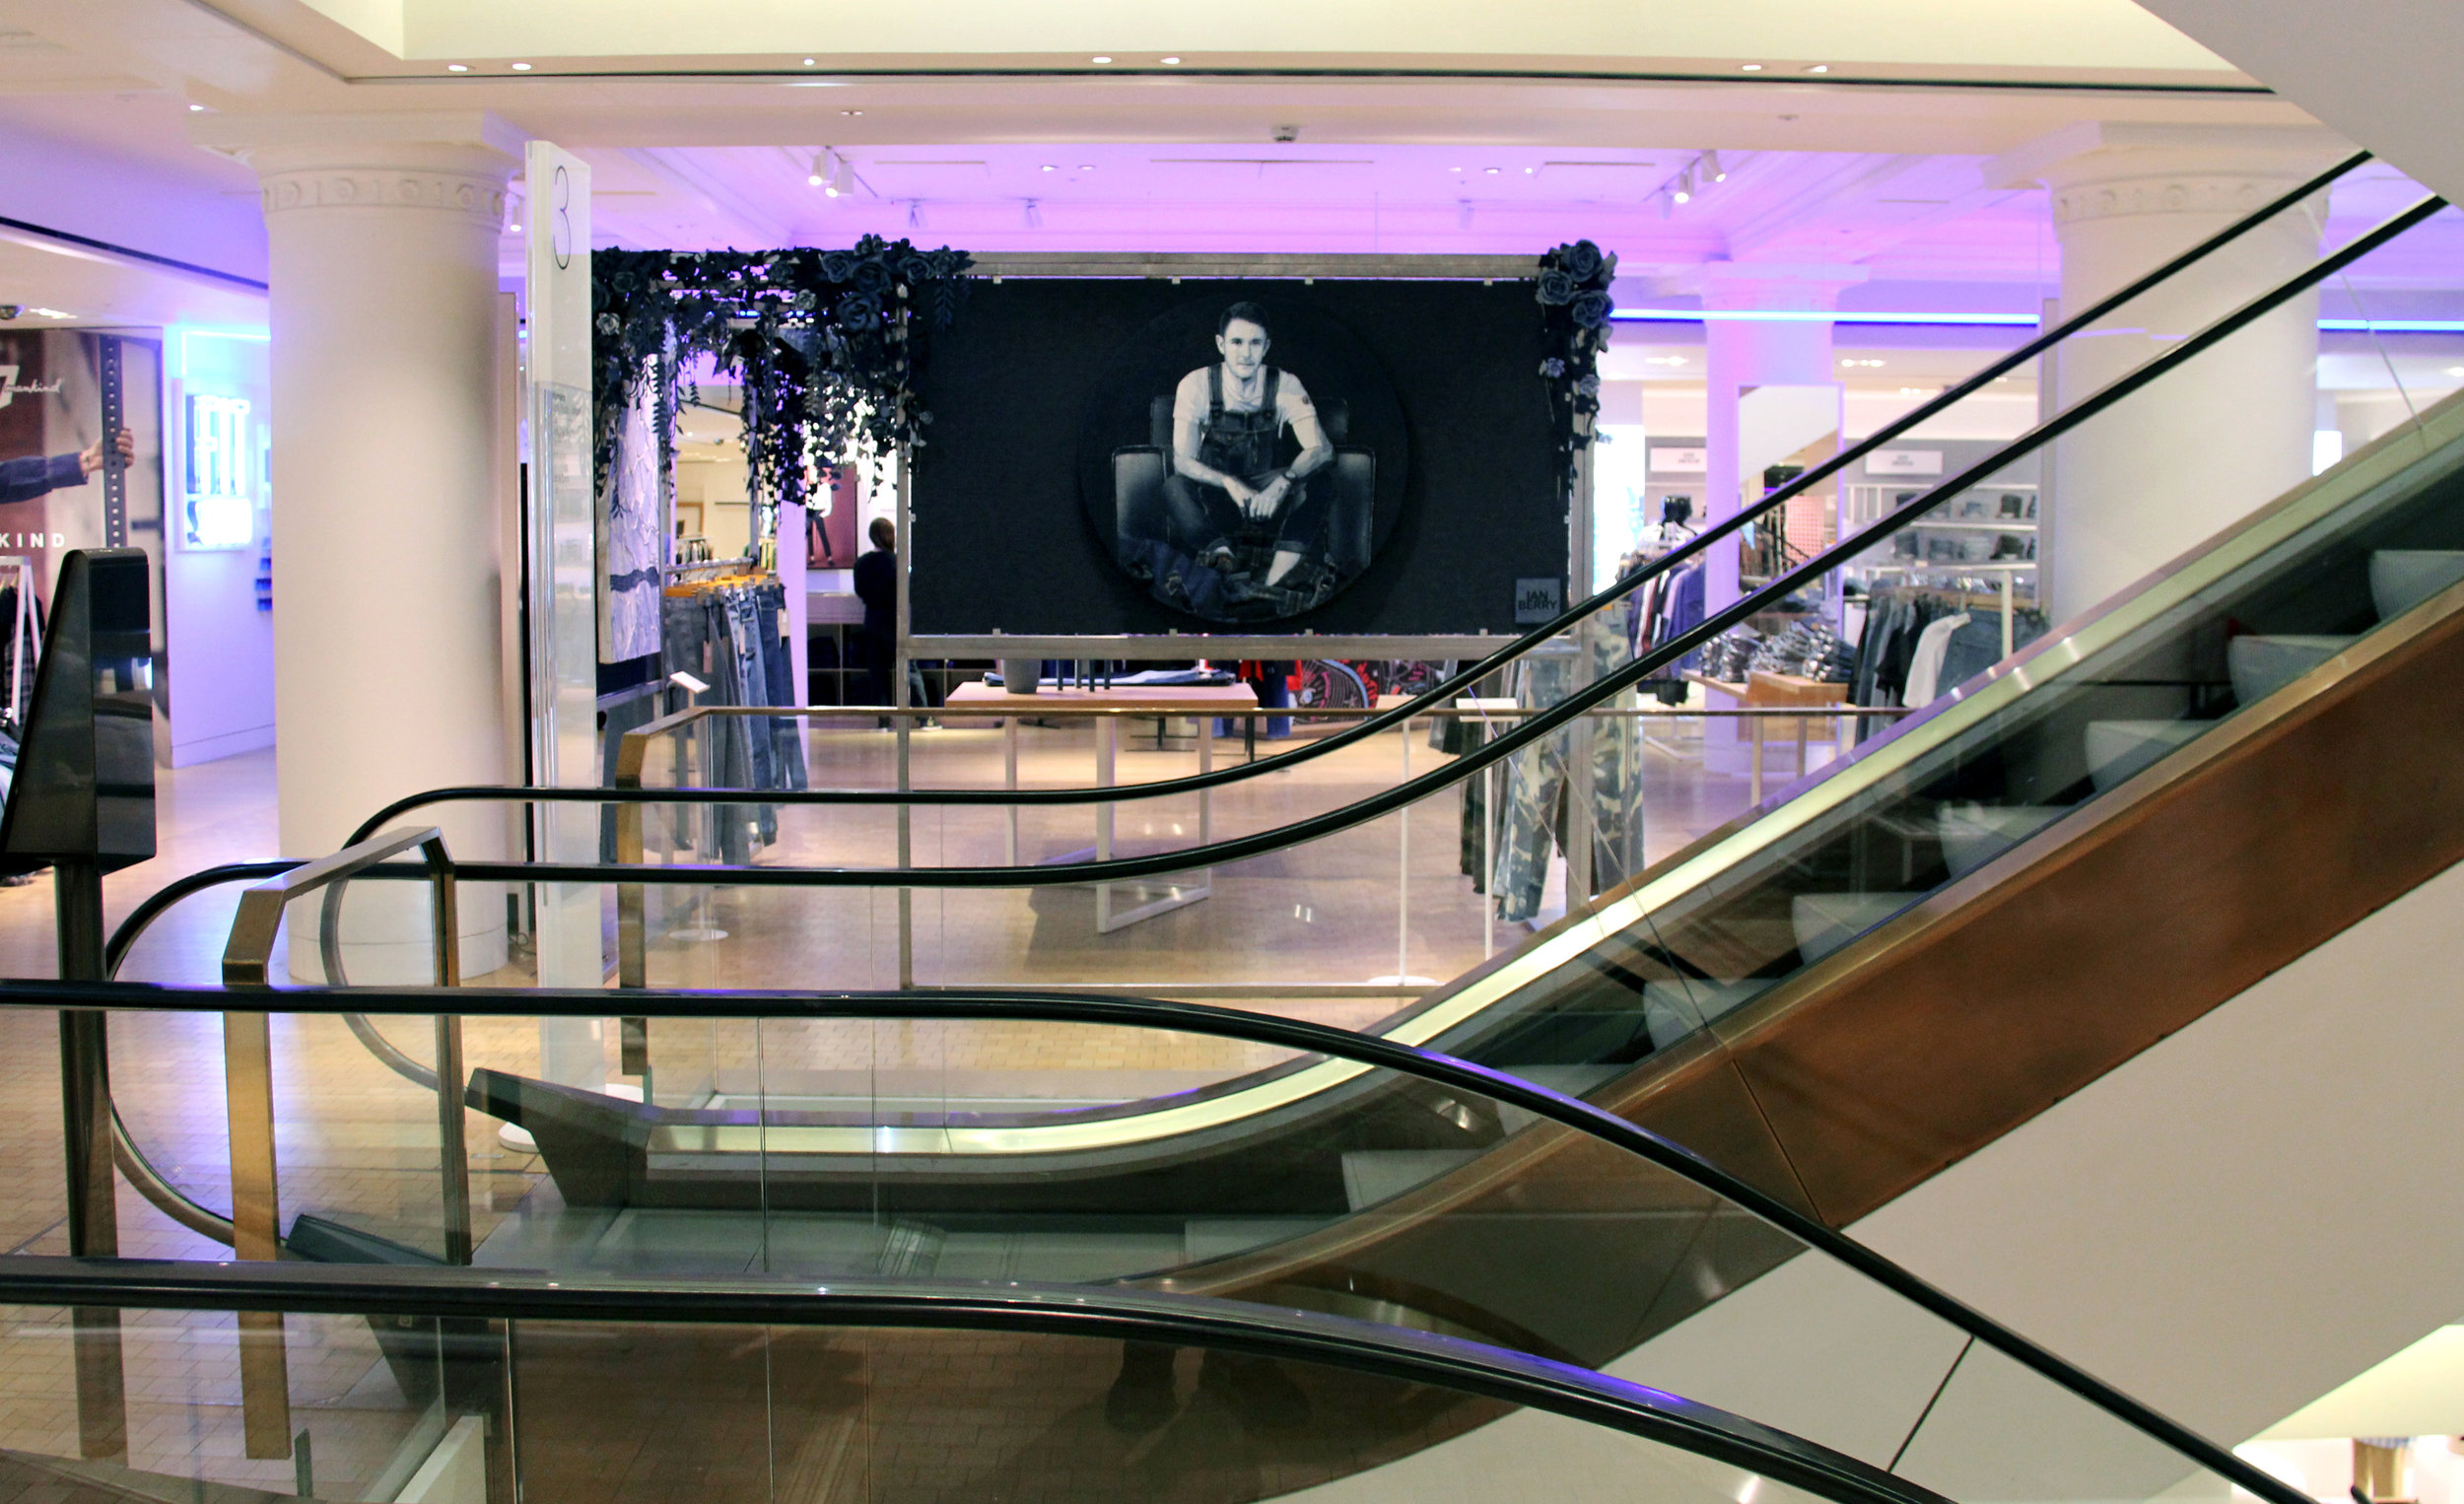 Ian Berry's Self Portrait in London's Selfridges